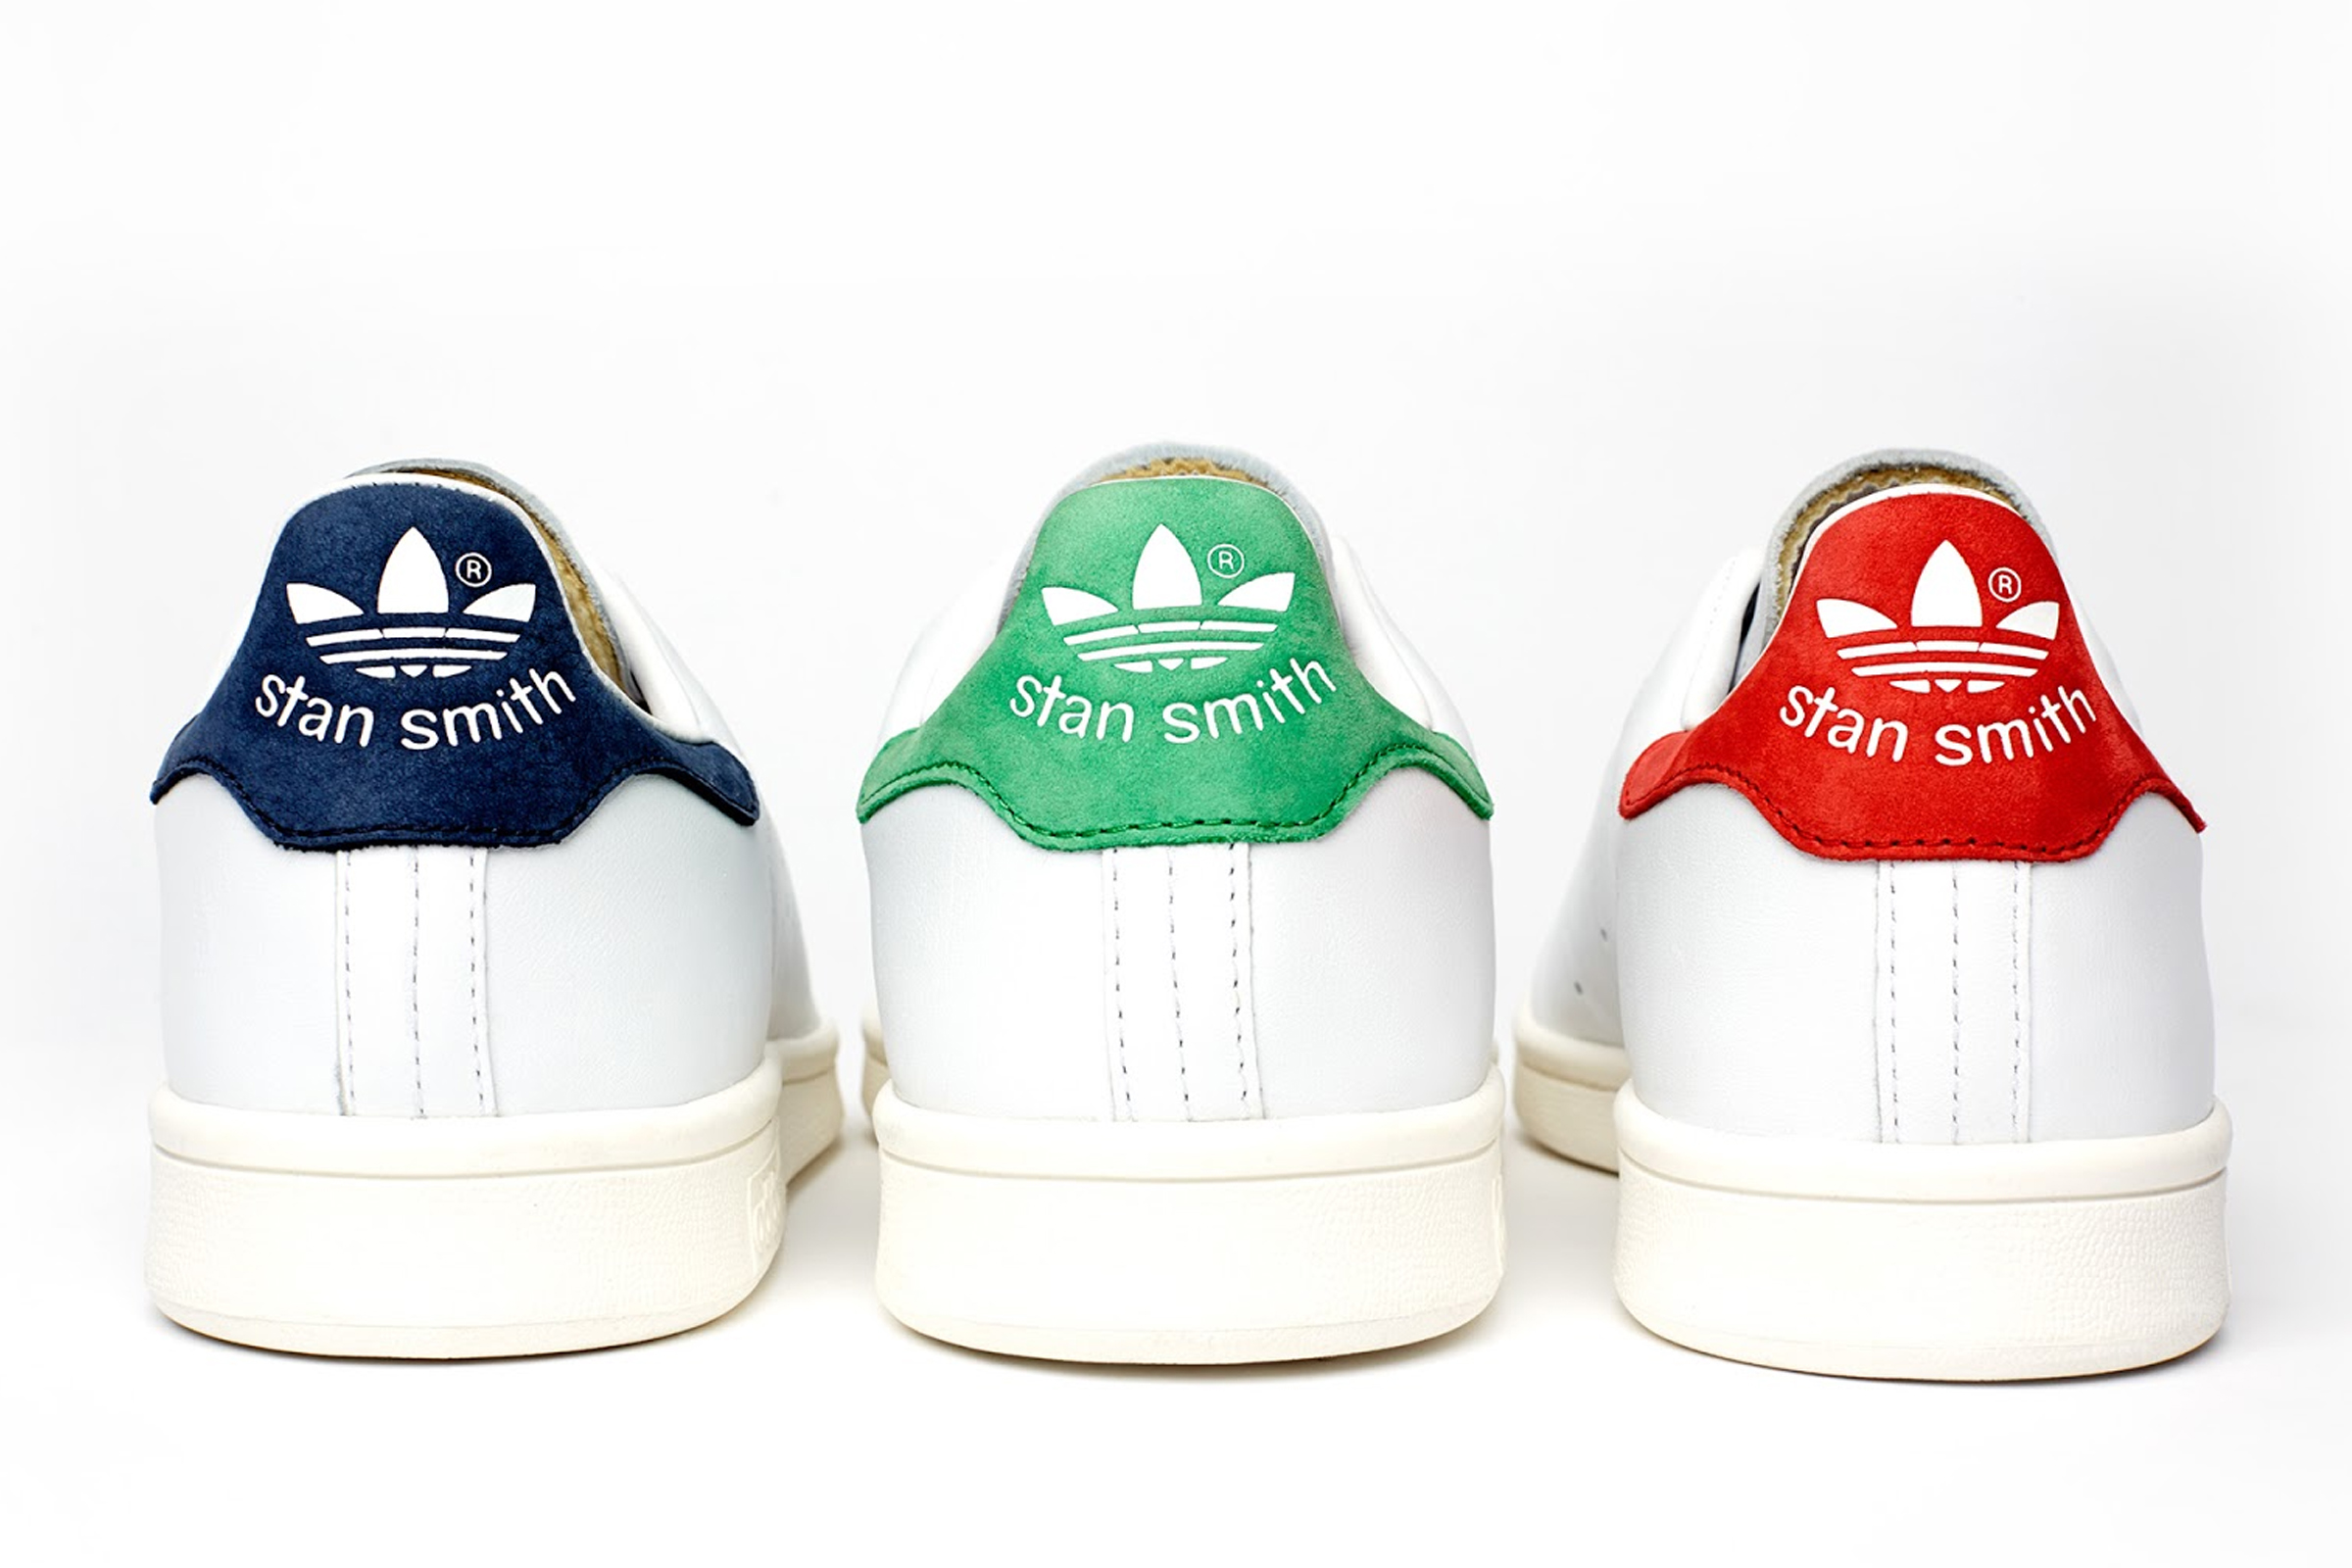 newest bf271 01b44 More Than Just a Man  A History of the adidas Stan Smith - Adidas Stan Smith  History   Grailed